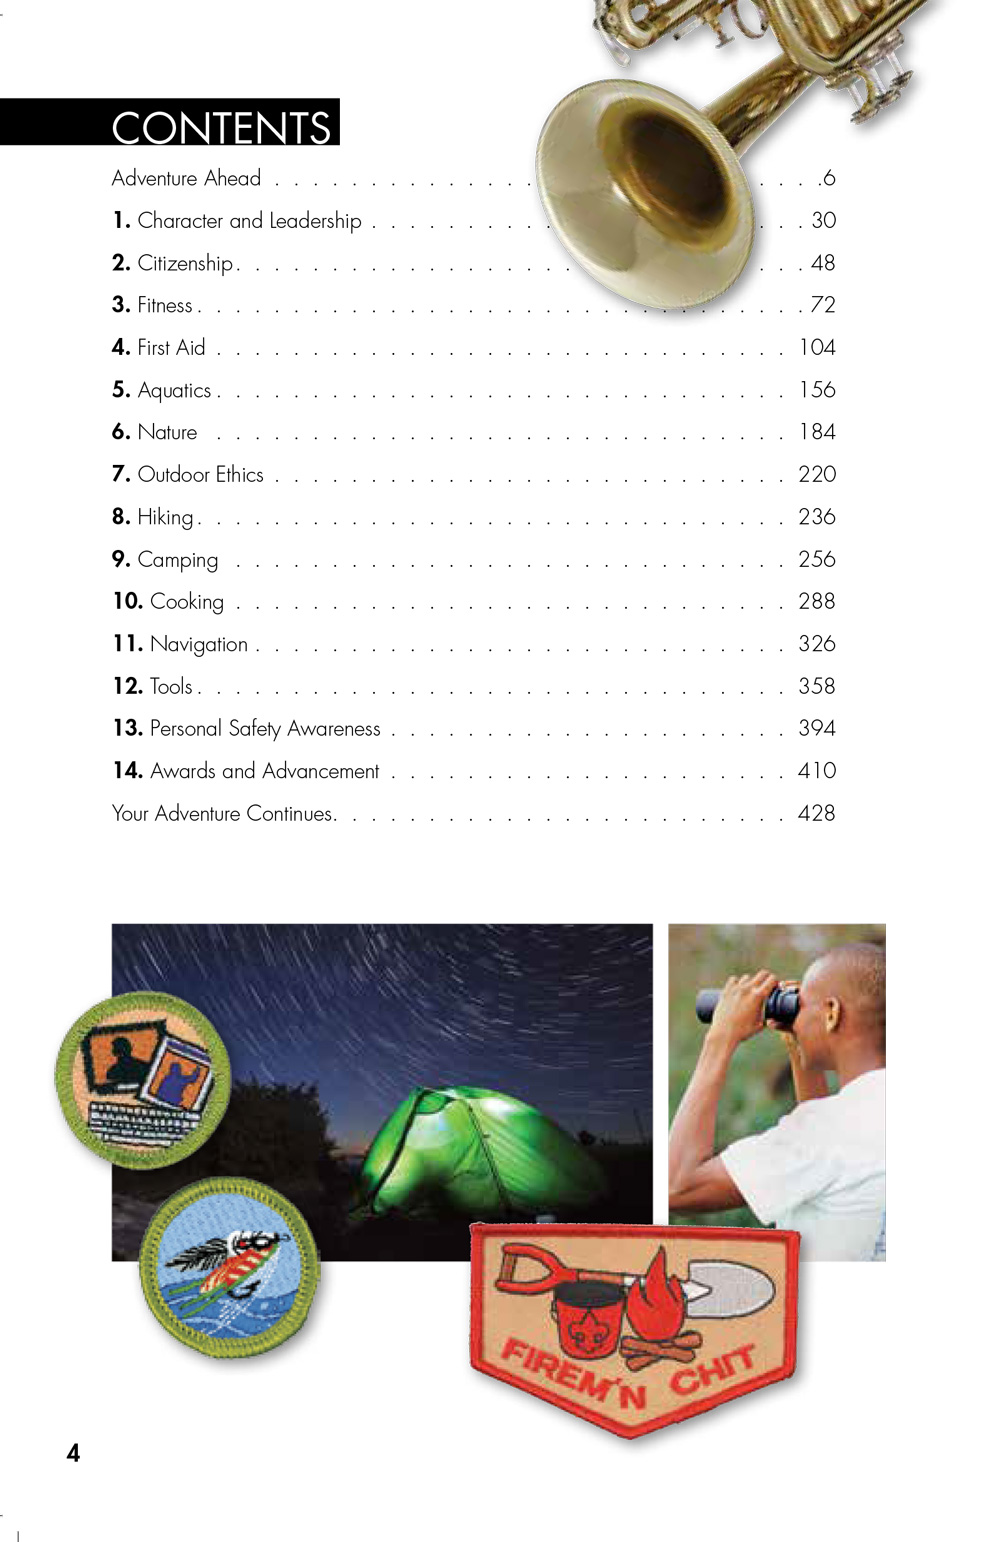 13th-edition-Boy-Scout-Handbook-contents-1